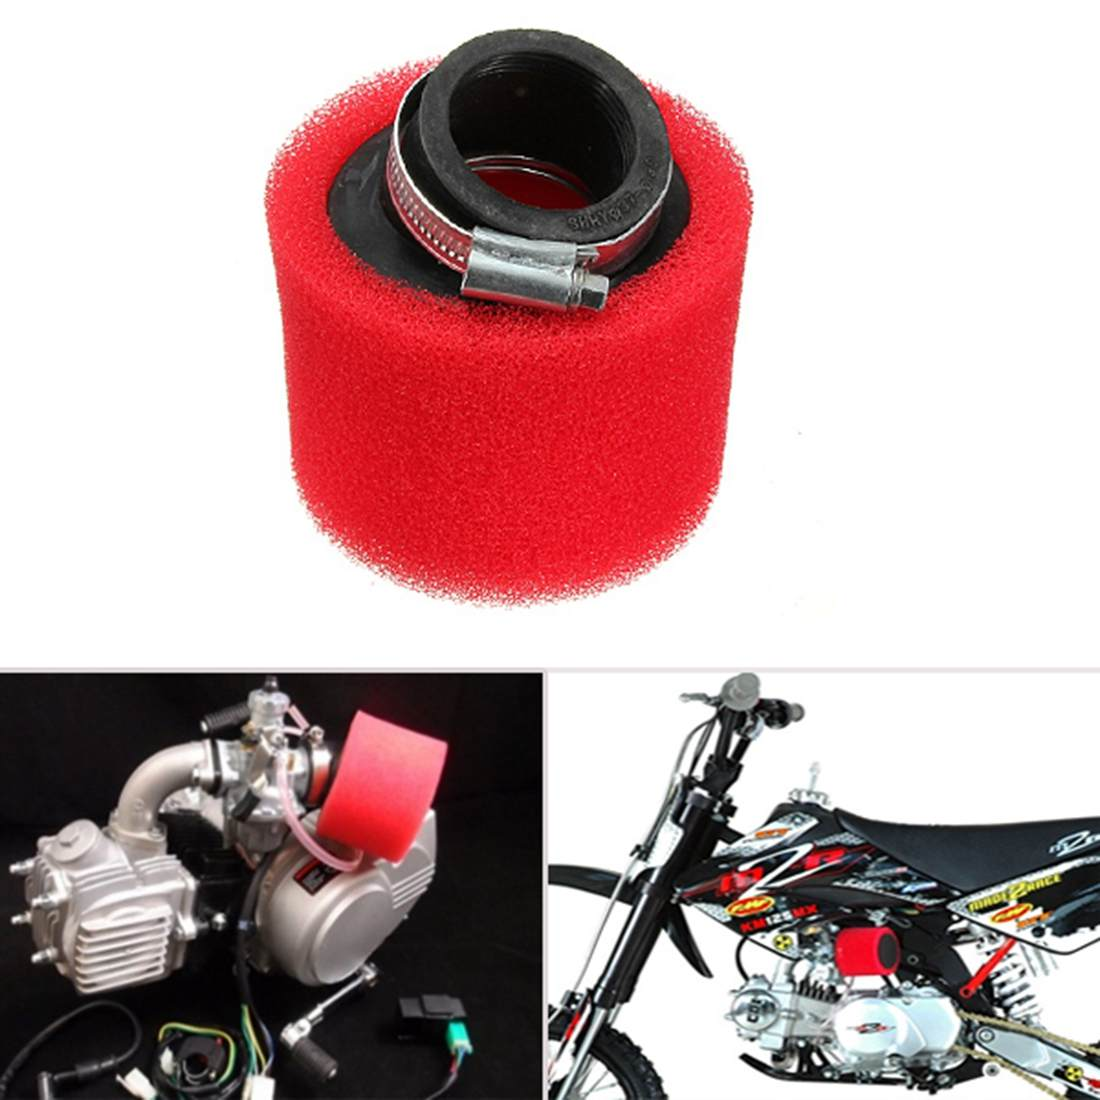 38mm 40mm ATV PIT DIRT BIKE 45 Degree ANGLED FOAM Air Filter Cleaner 110cc 125cc RED CRF50 XR50 CRF image